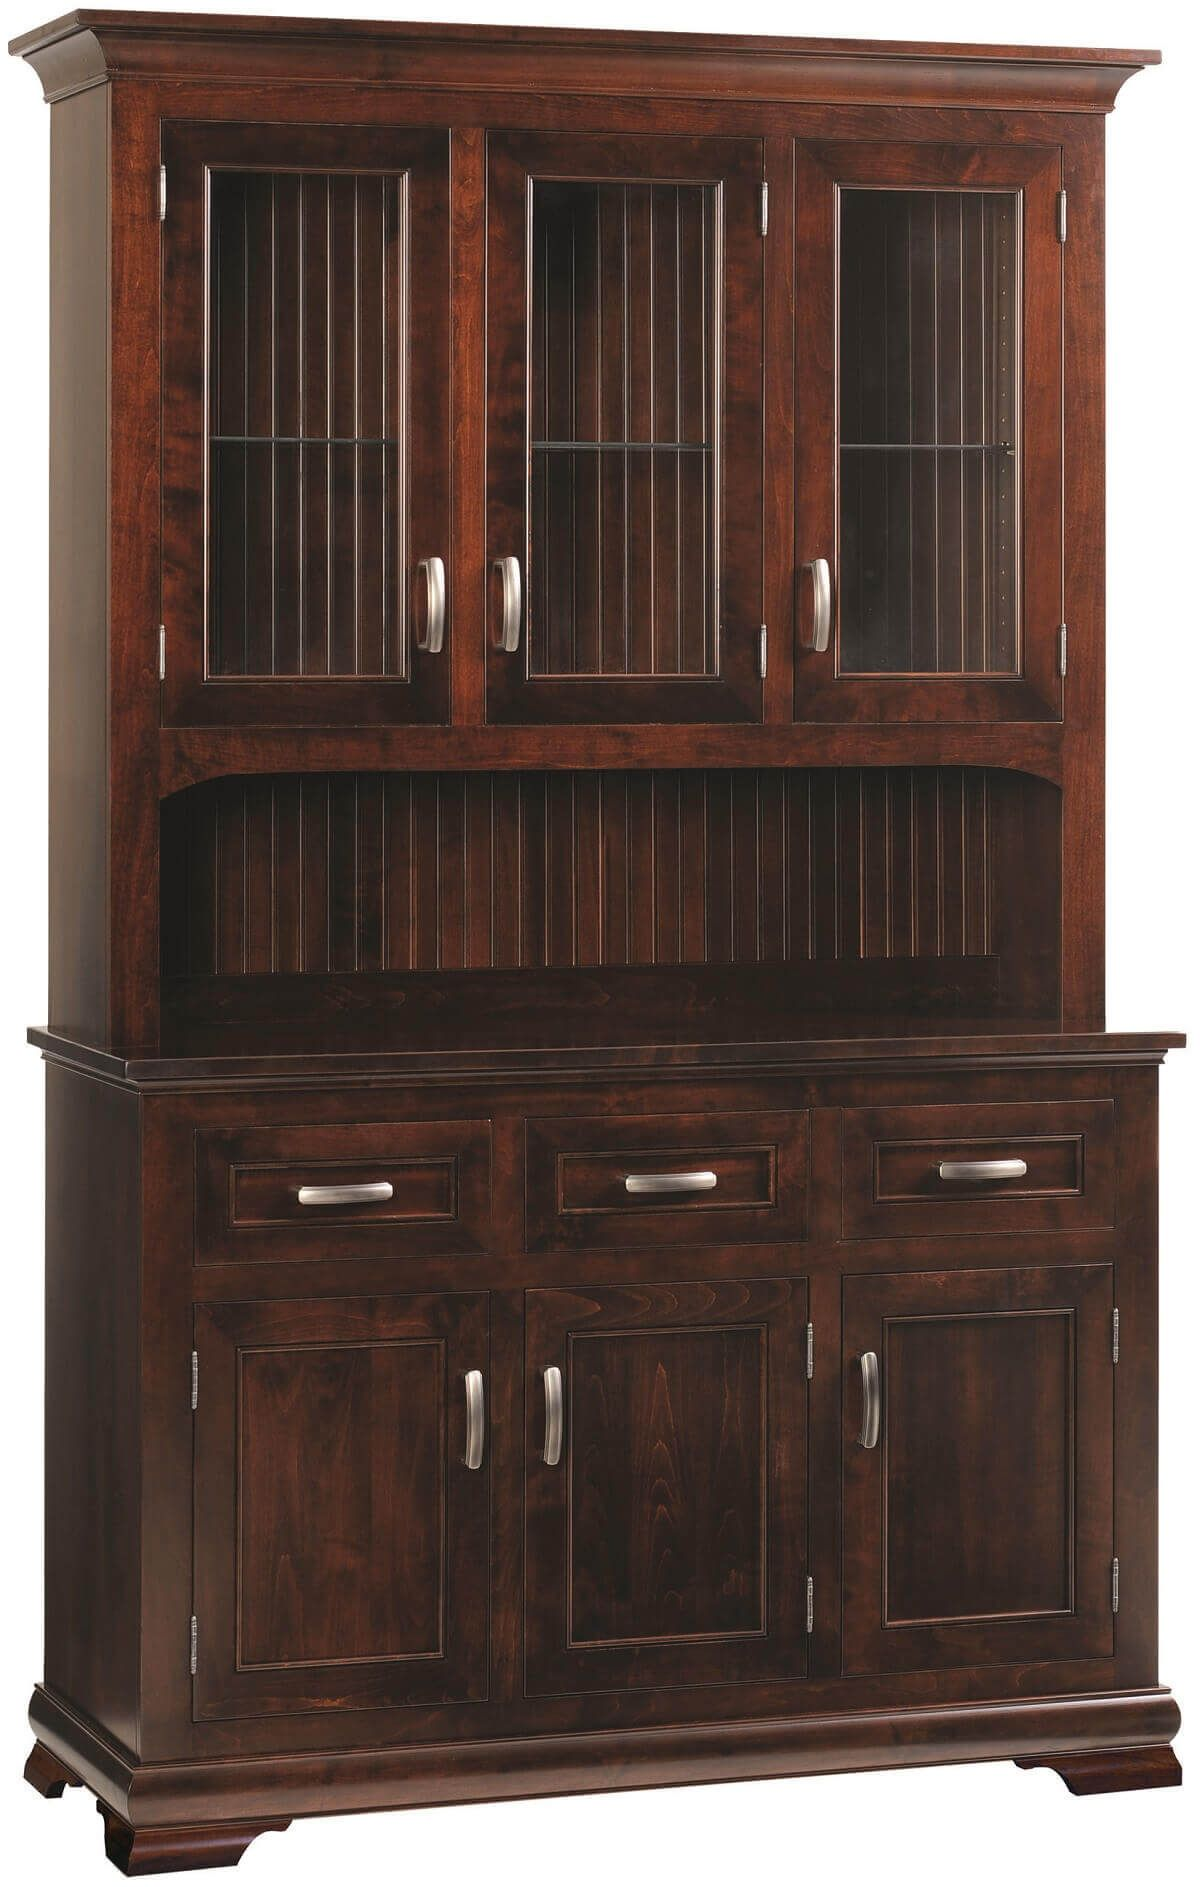 Holly 3-Door Hutch